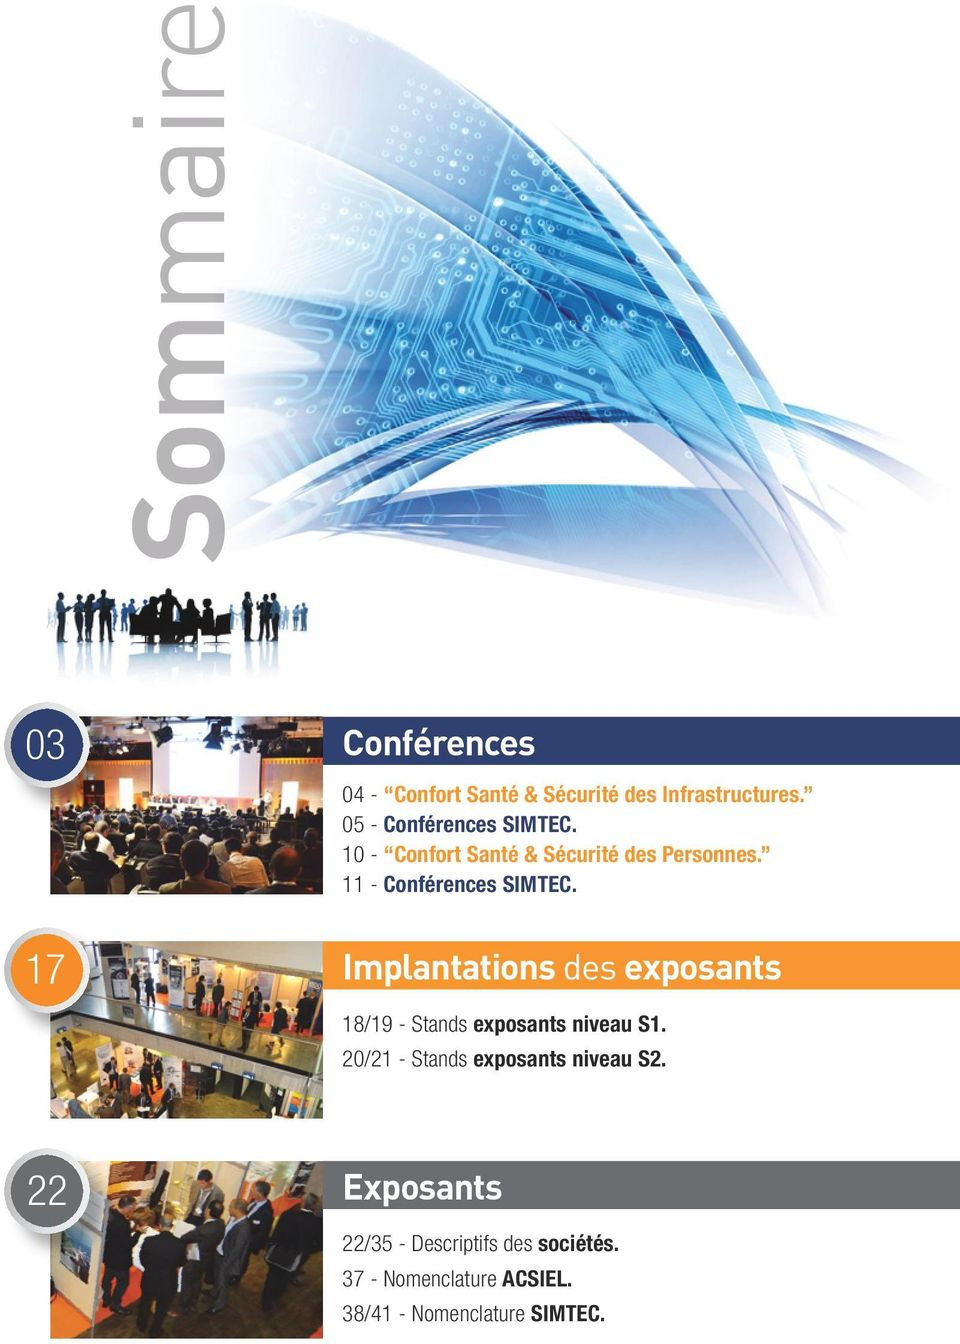 Implantations des exposants 18/19 - Stands exposants niveau S1.